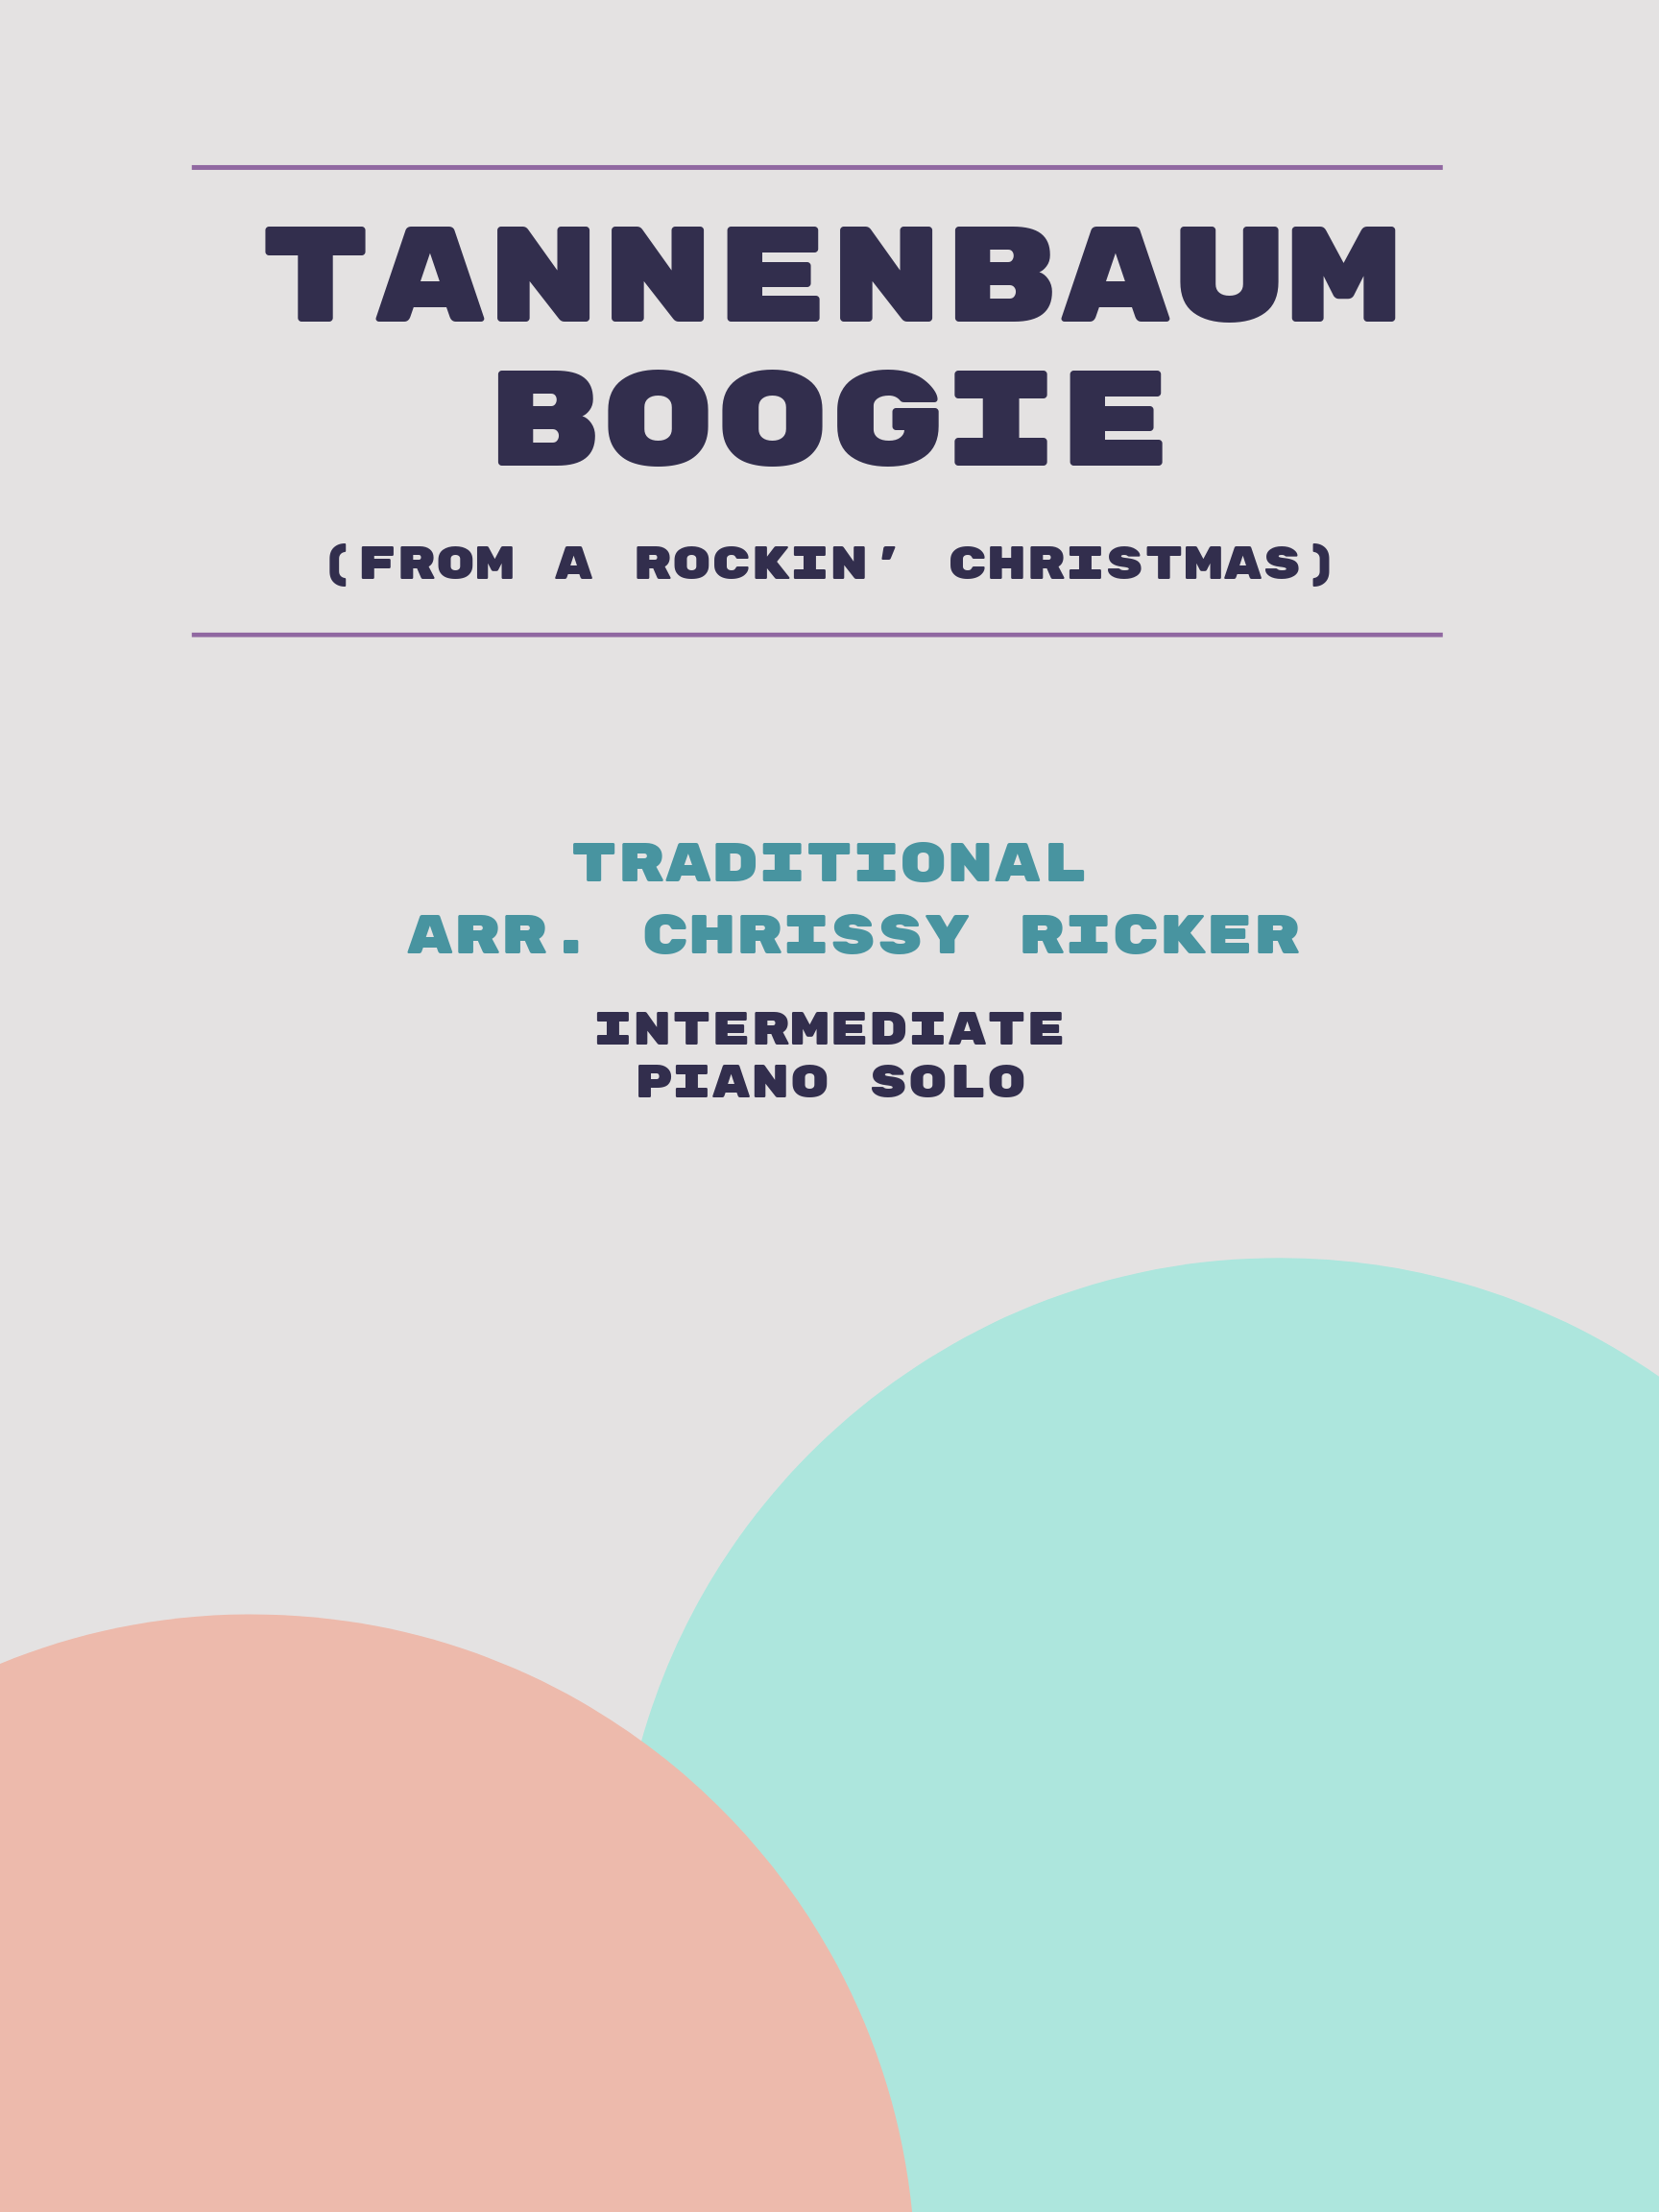 Tannenbaum Boogie by Traditional